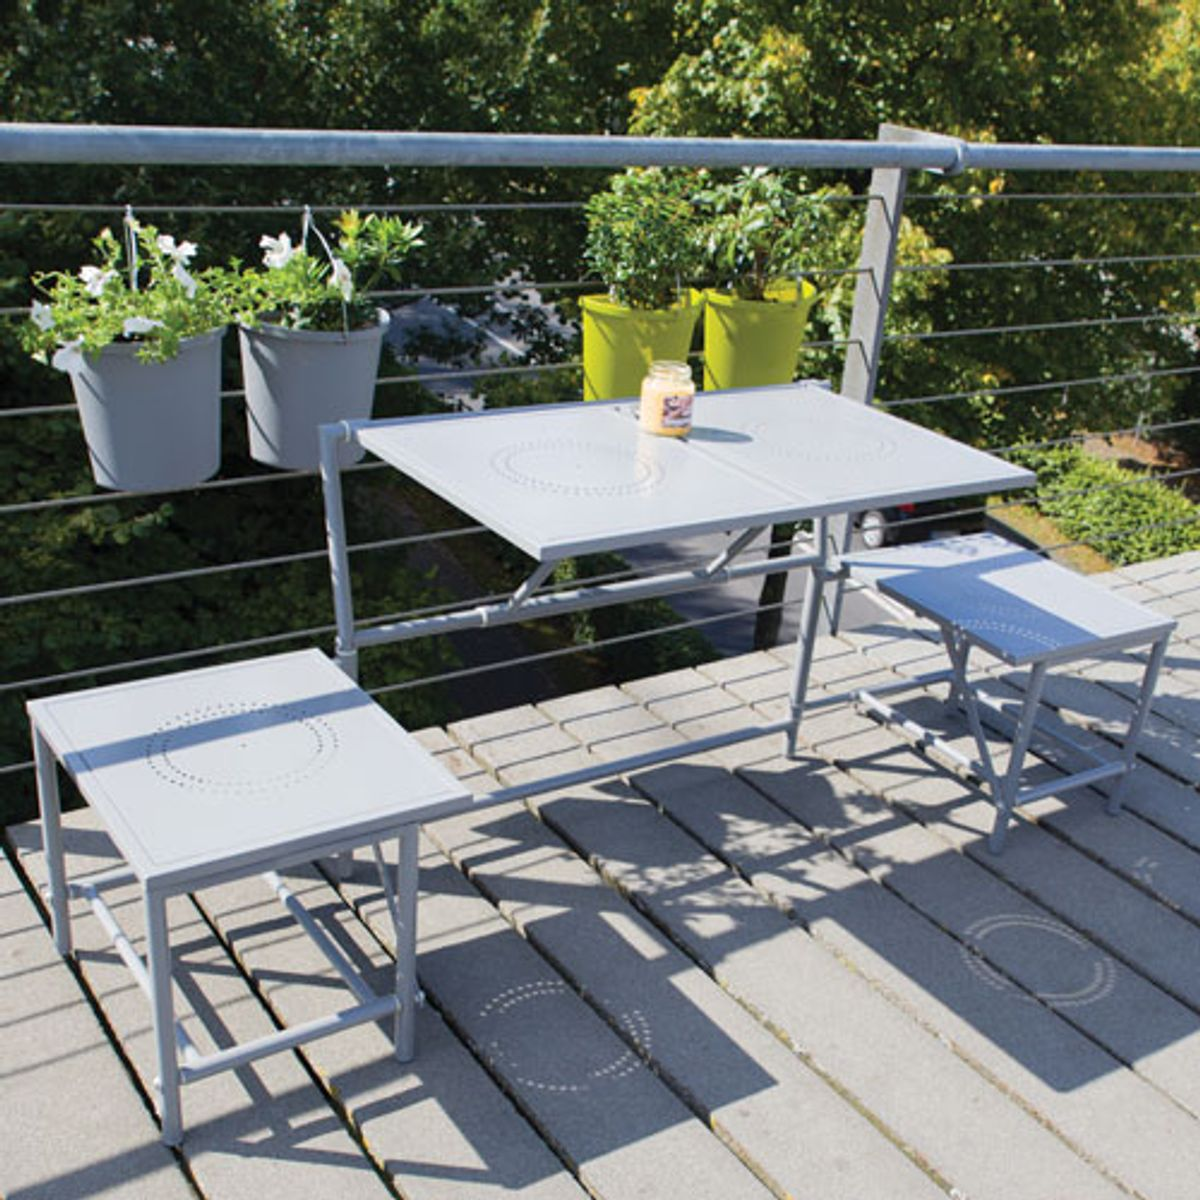 Table Jardin Balcon Salon 2 En 1 Table Banc Pliant Métal Pour Balcon